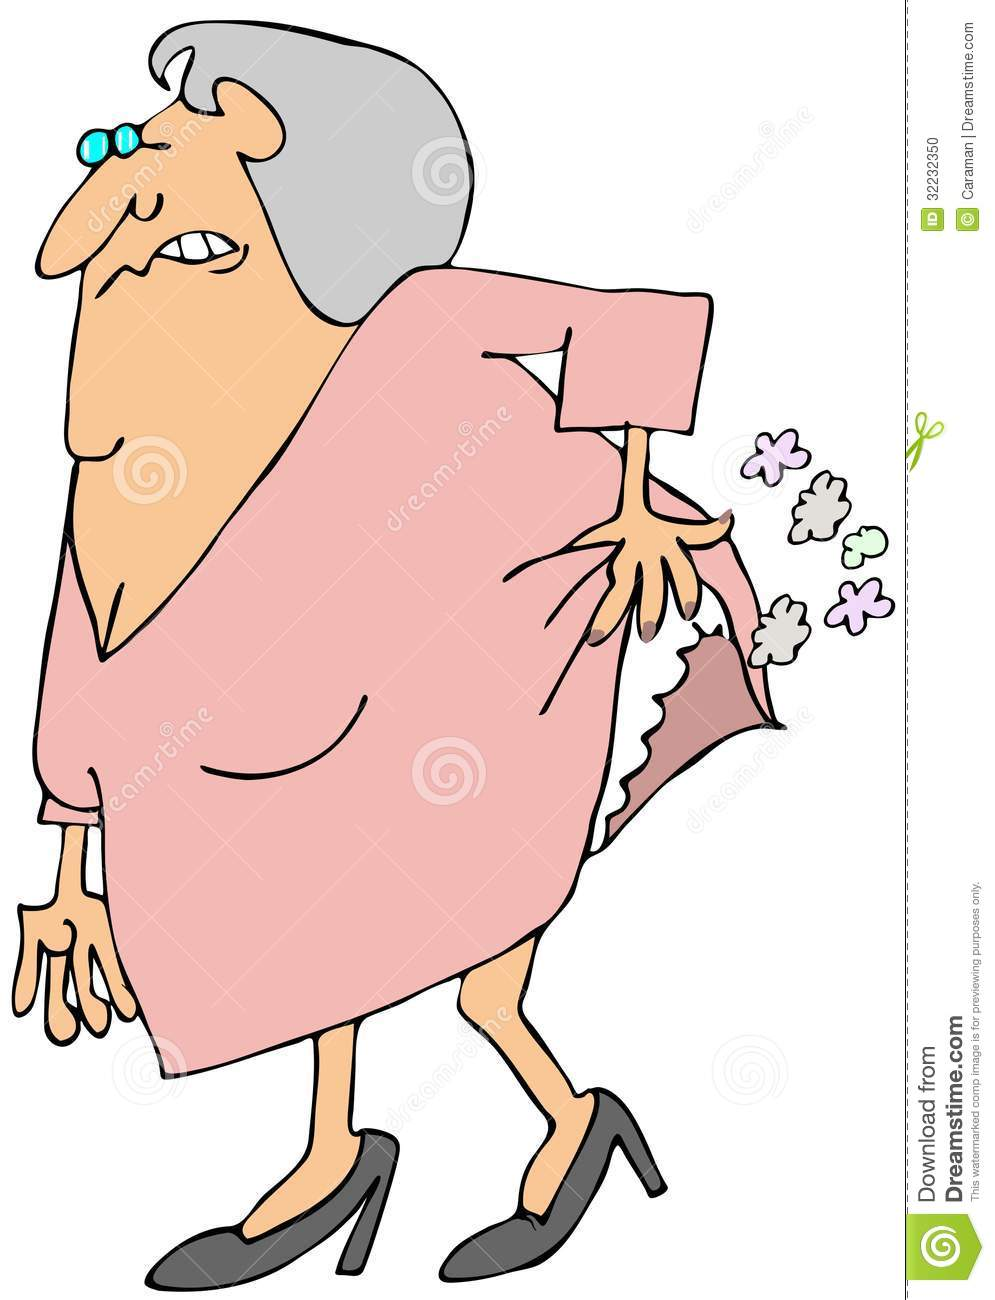 This illustration depicts an old woman hiking her dress to break wind.